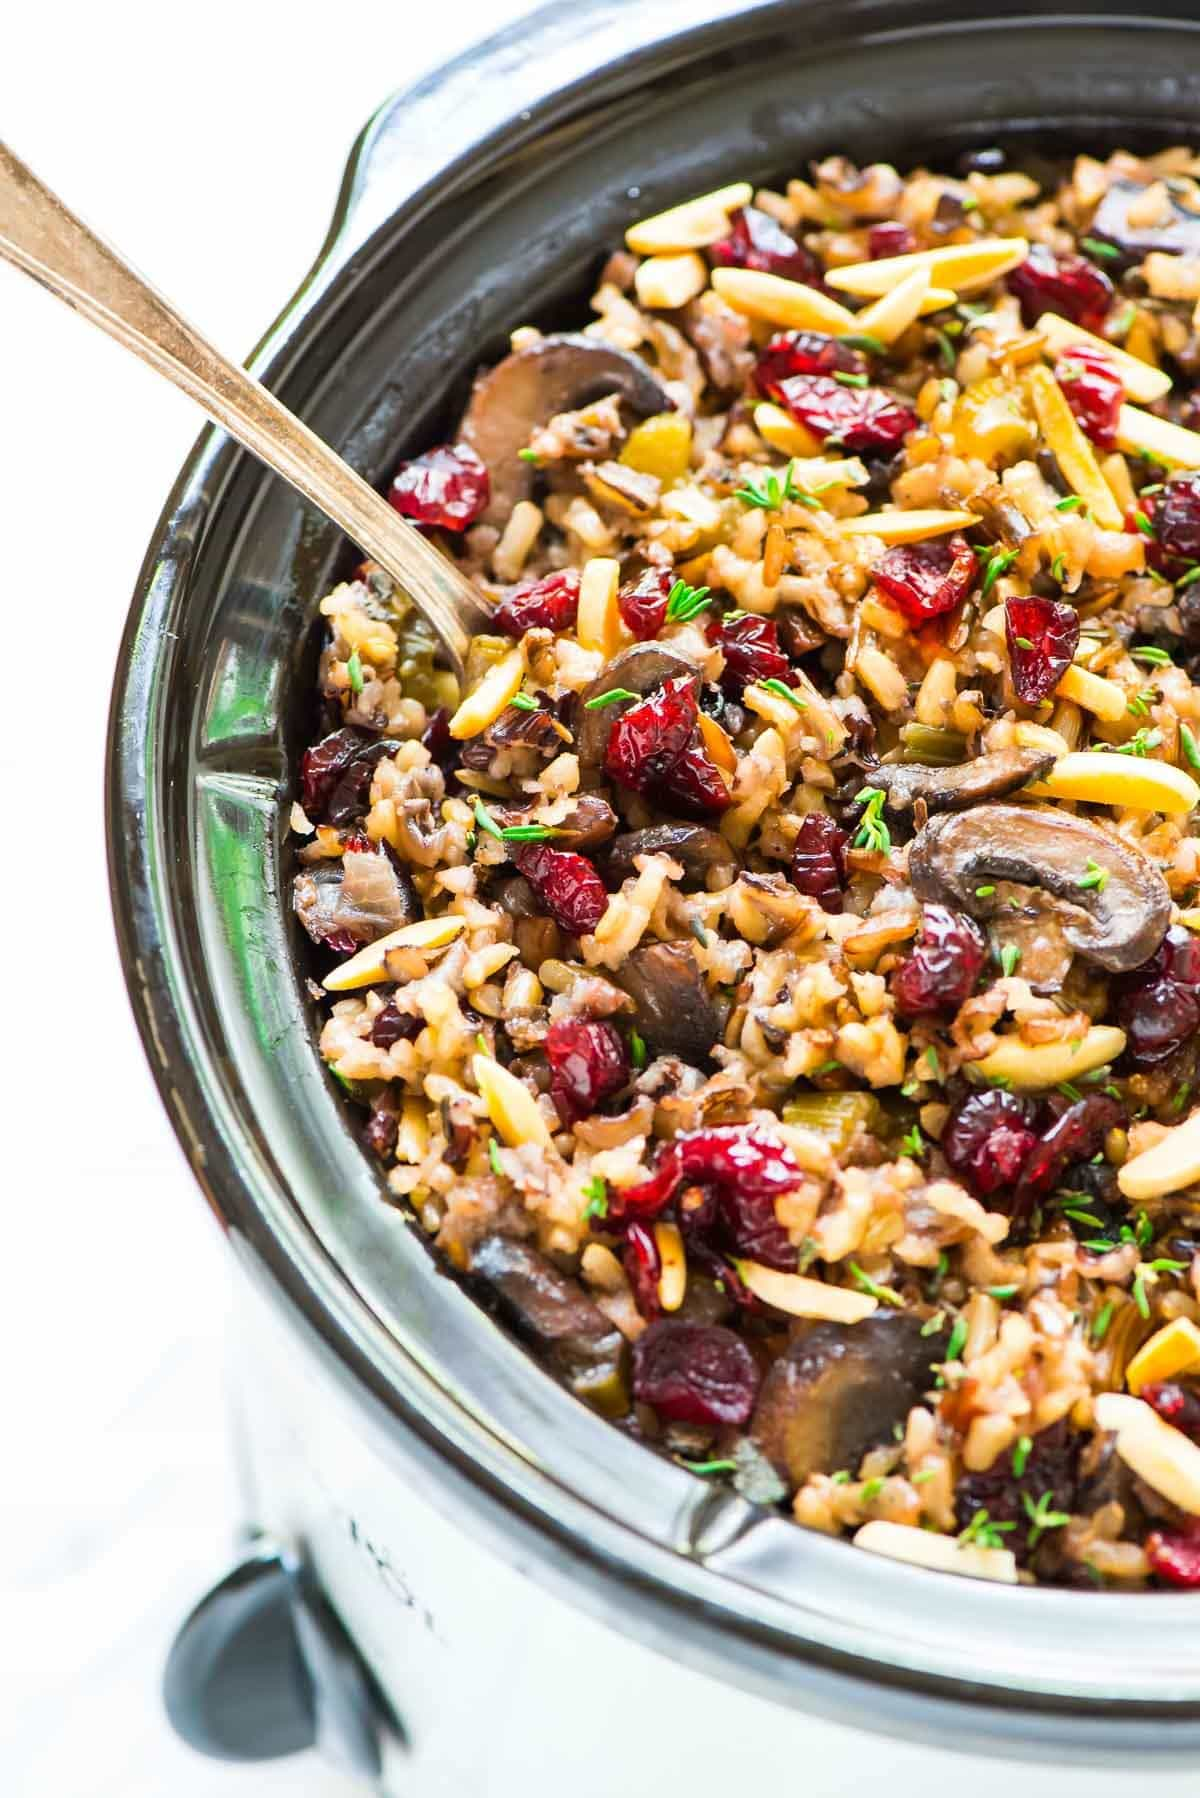 Crockpot Stuffing with Wild Rice and Cranberries